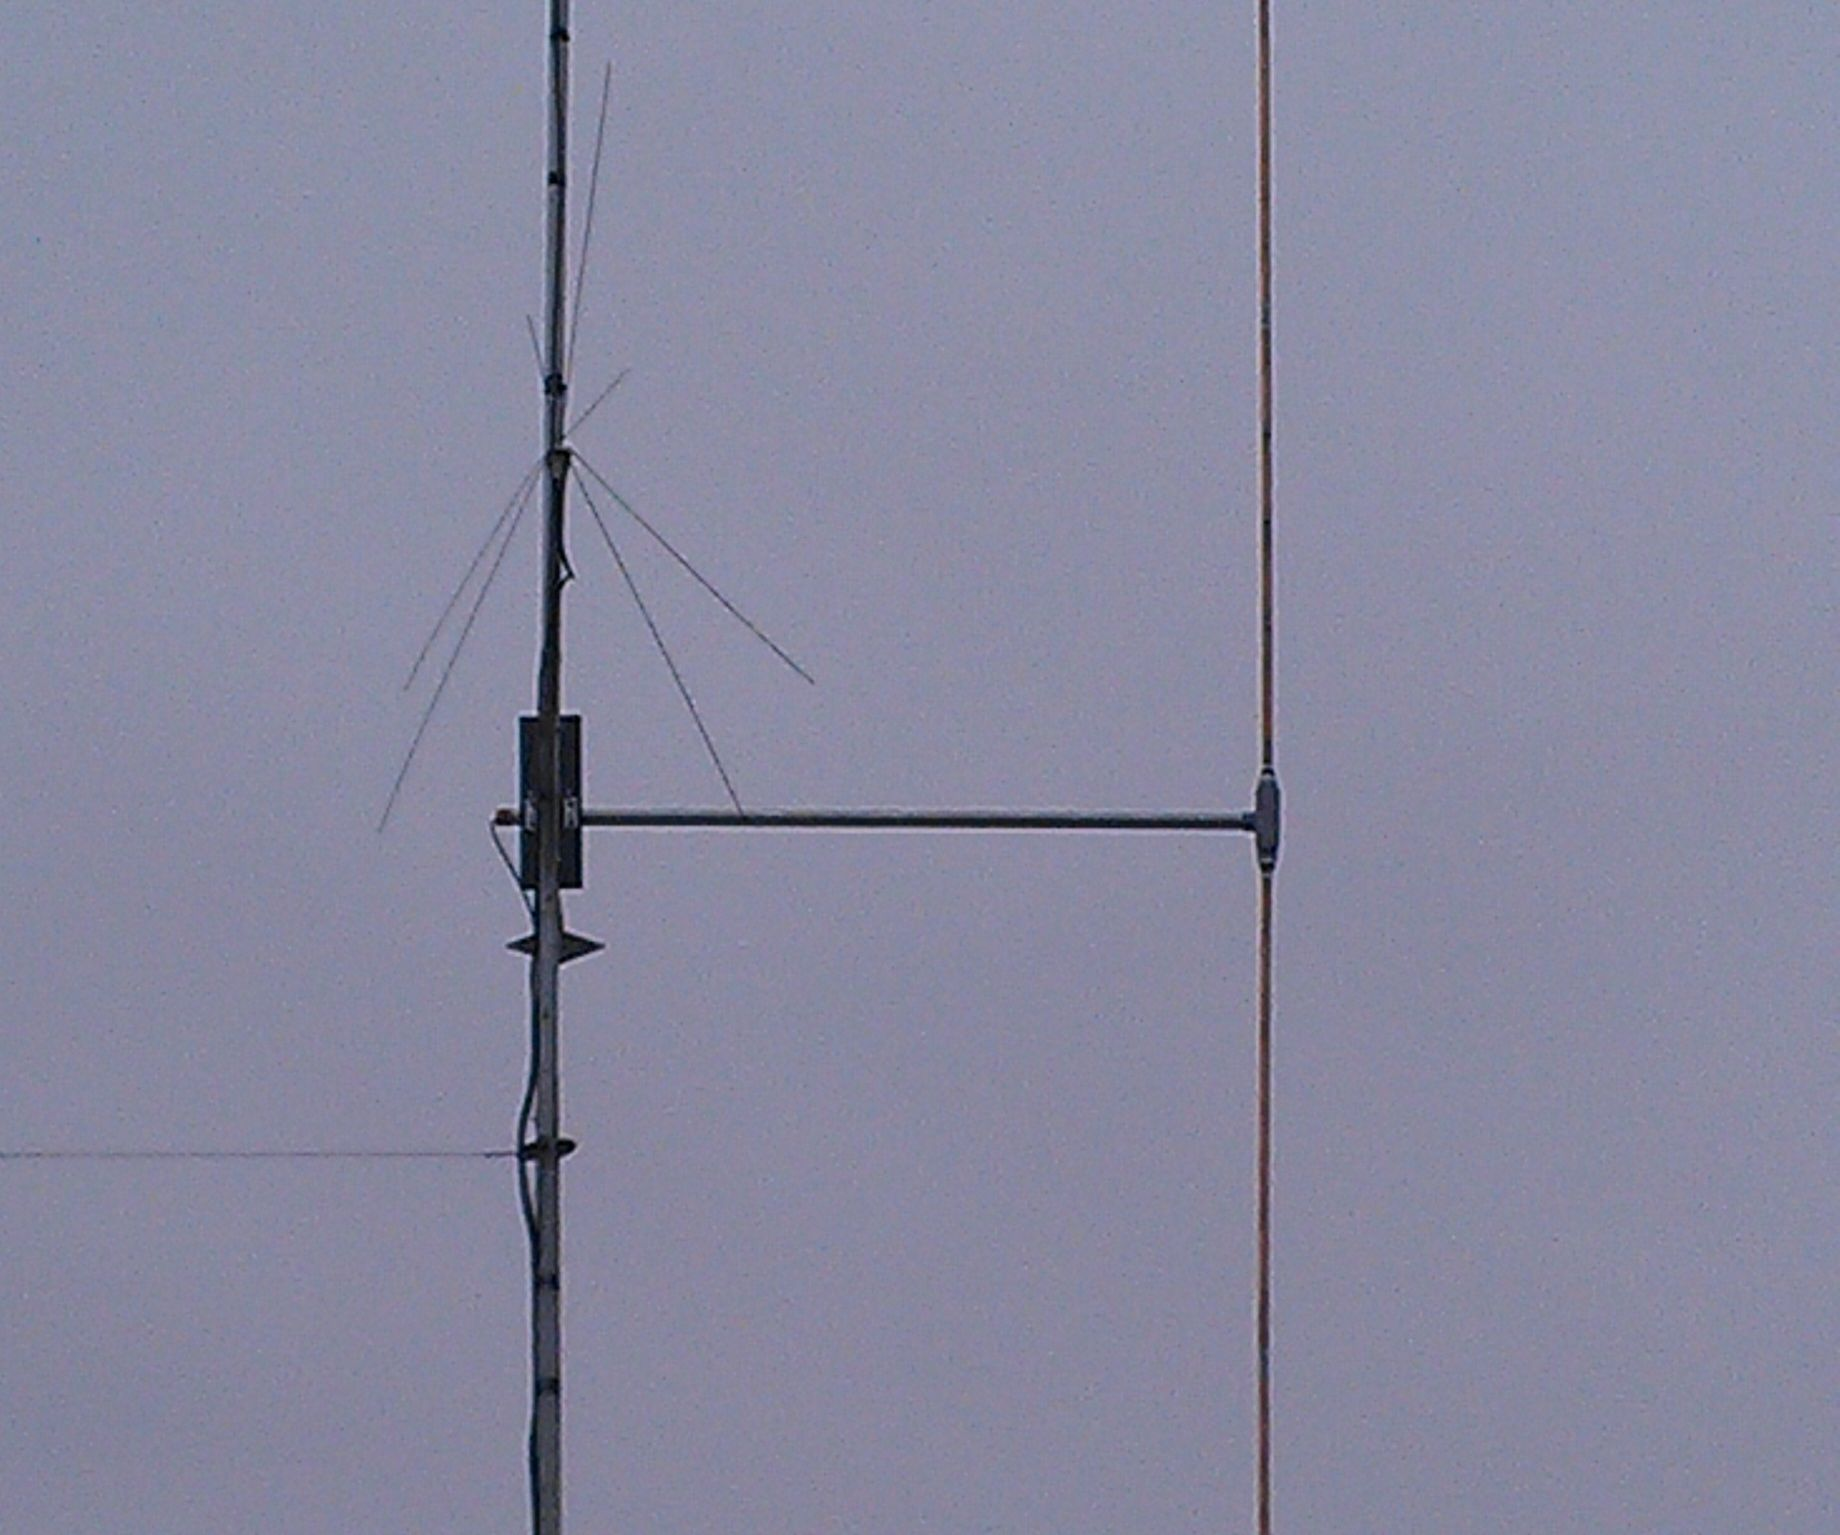 My Experiment in Building a Vertical Dipole Antenna: 8 Steps